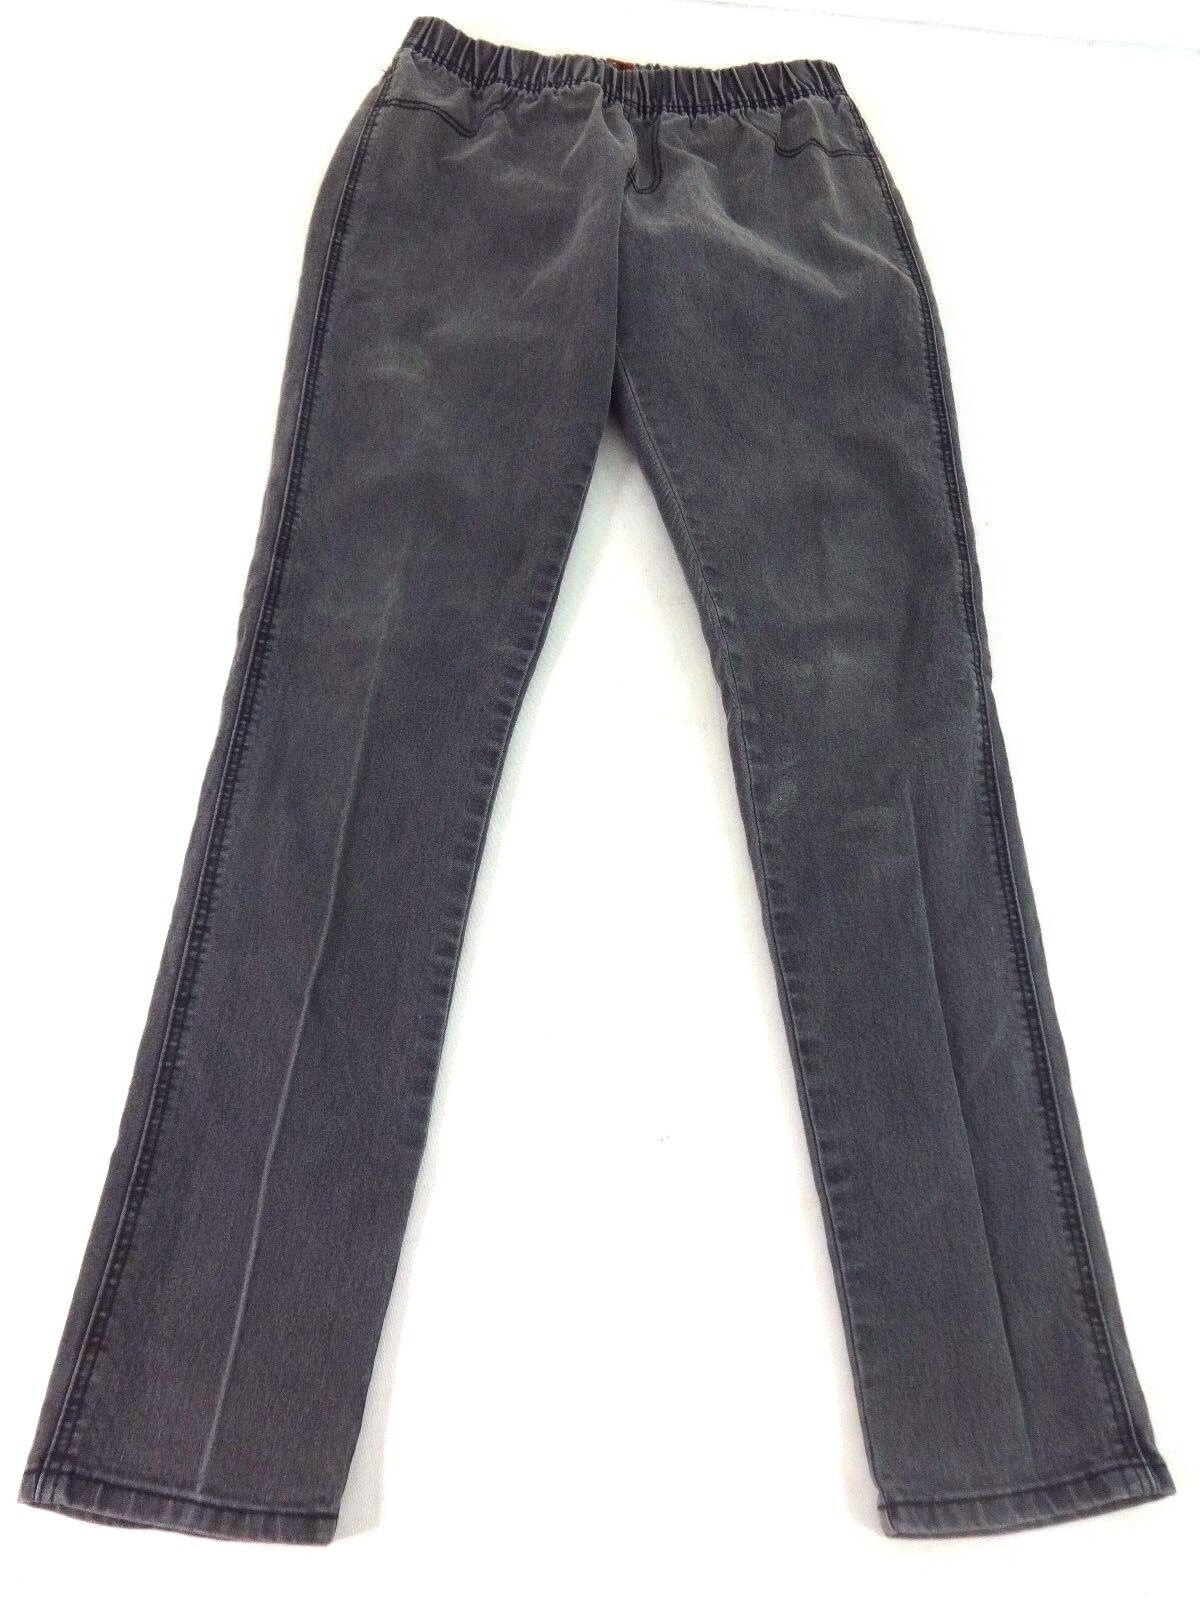 cd95b37dbe8 Details about H M DIVIDED WOMENS GRAY WASH GRAY DENIM COTTON BLEND SKINNY  JEANS SIZE 12